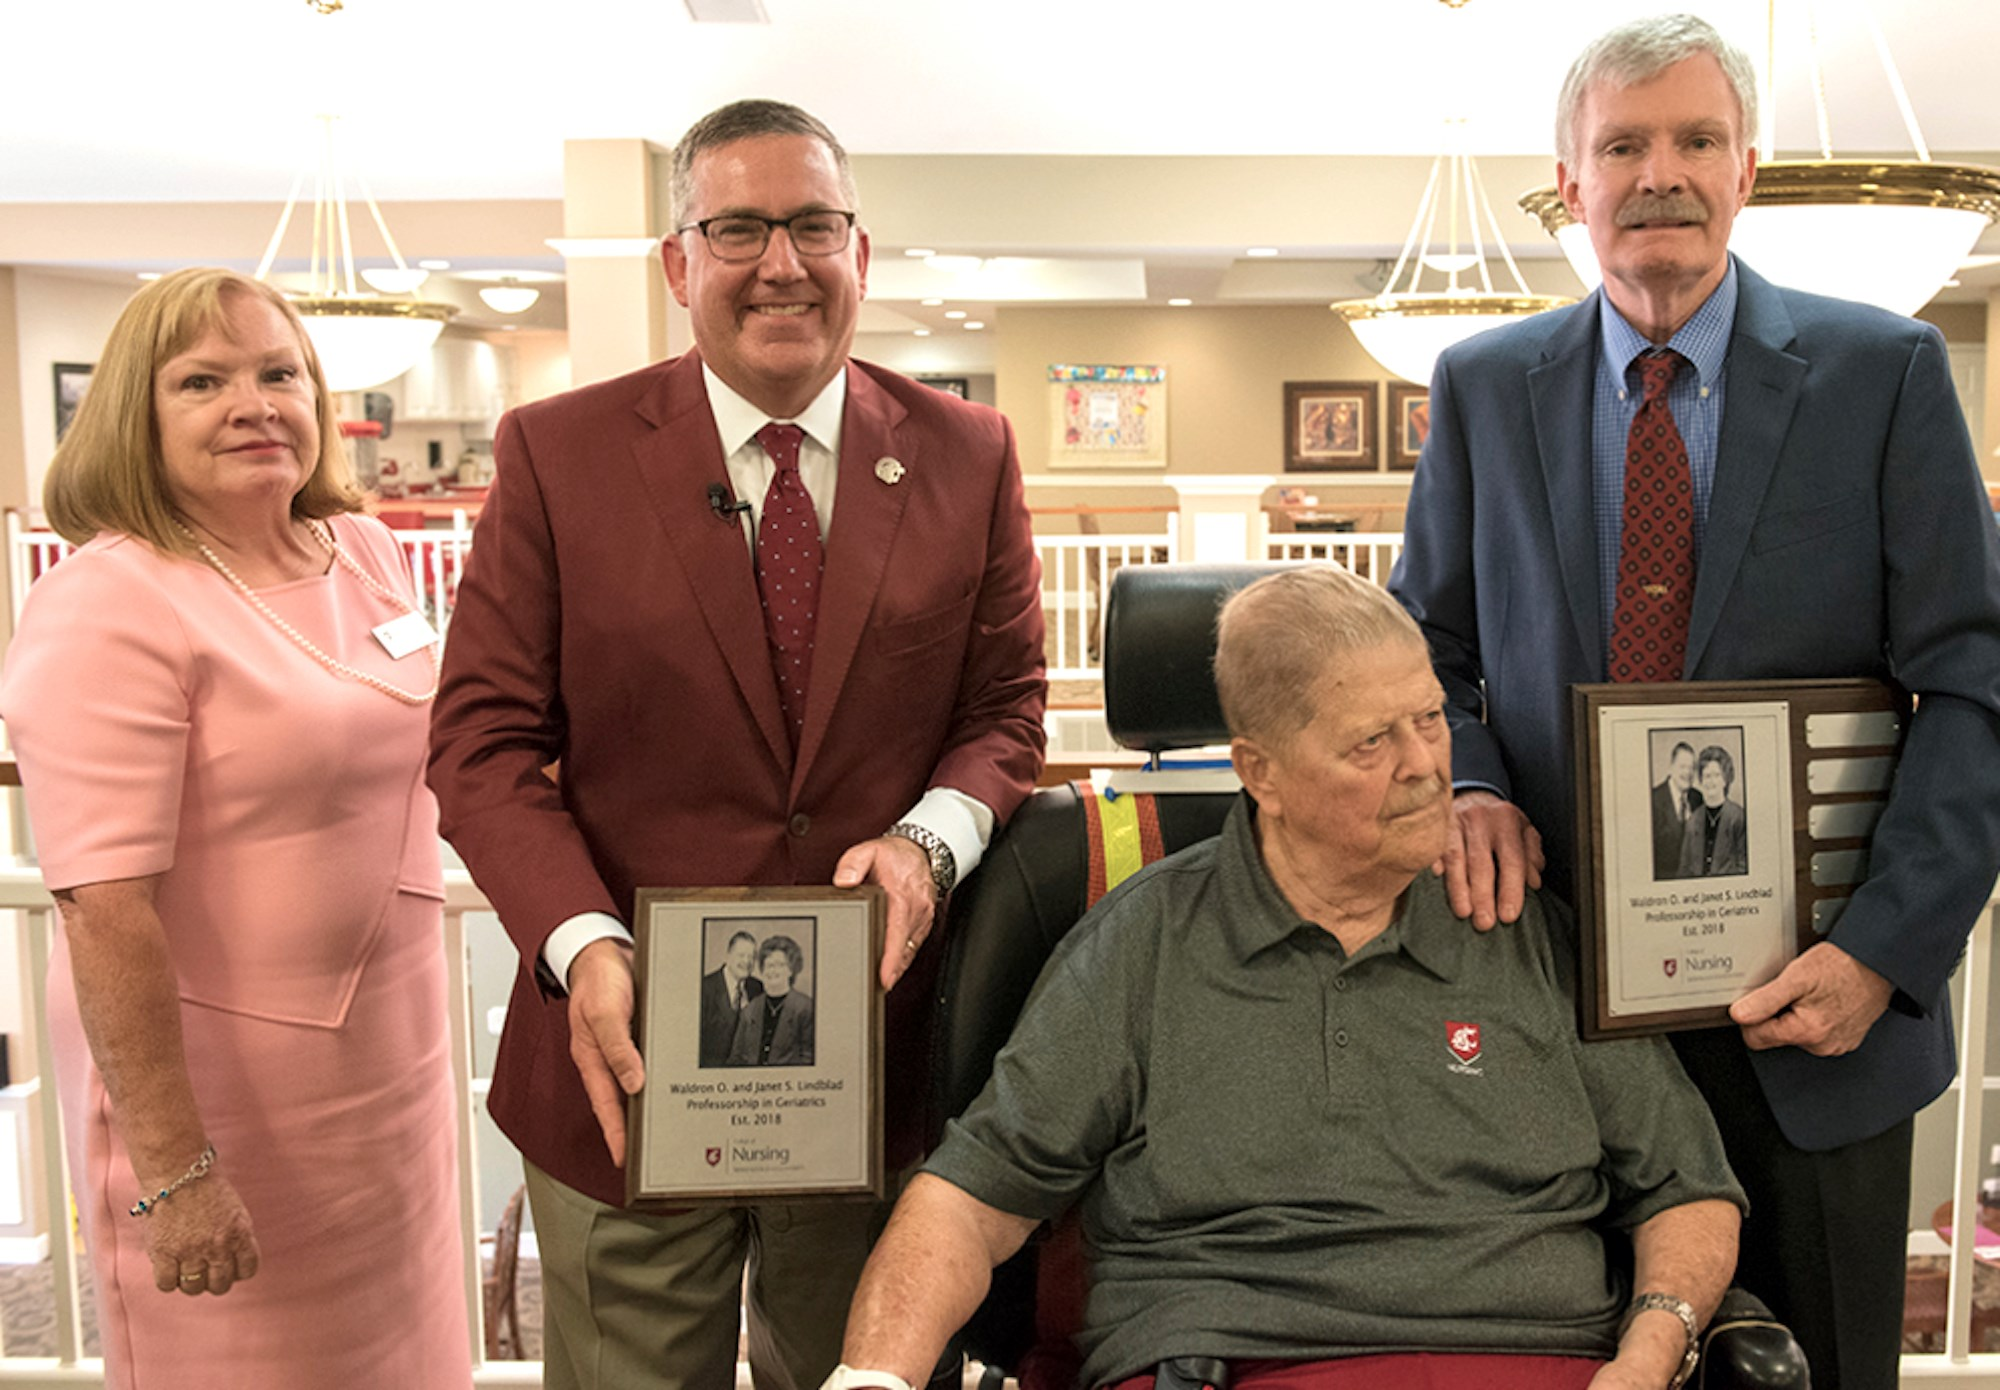 92-year-old vet donates $1M to help further nursing home care